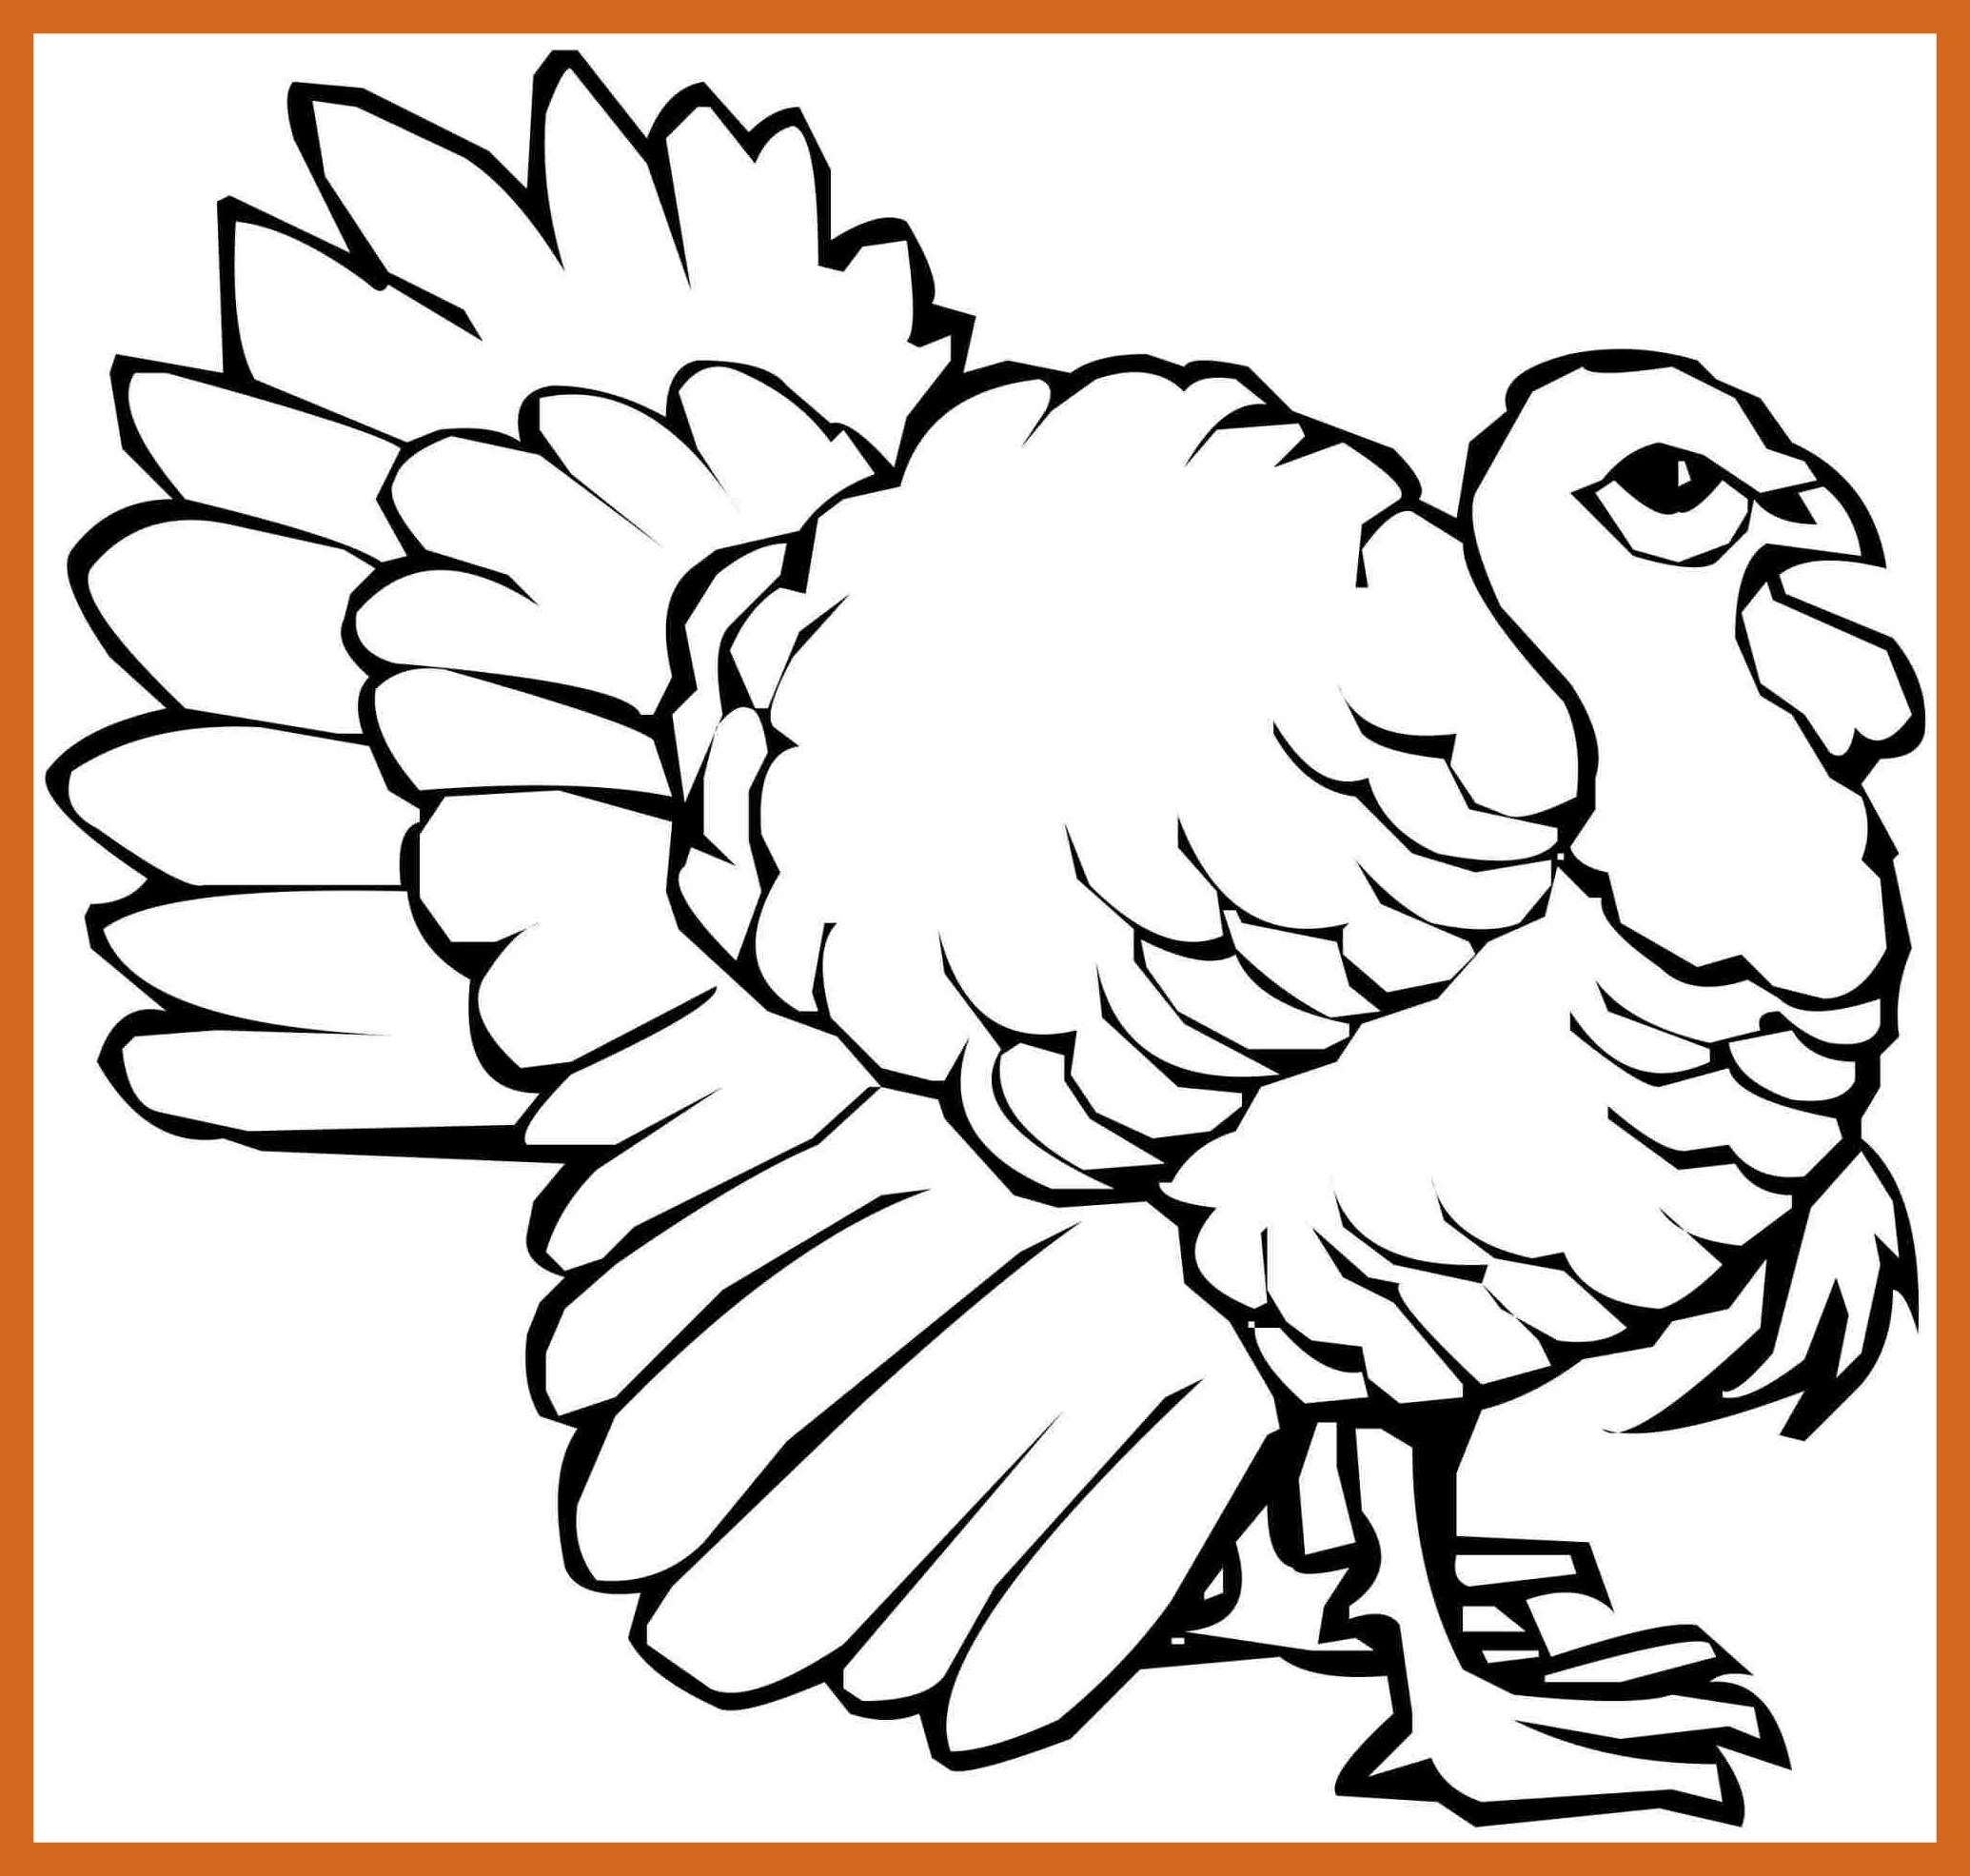 Turkey Hunting Coloring Pages At Getcolorings